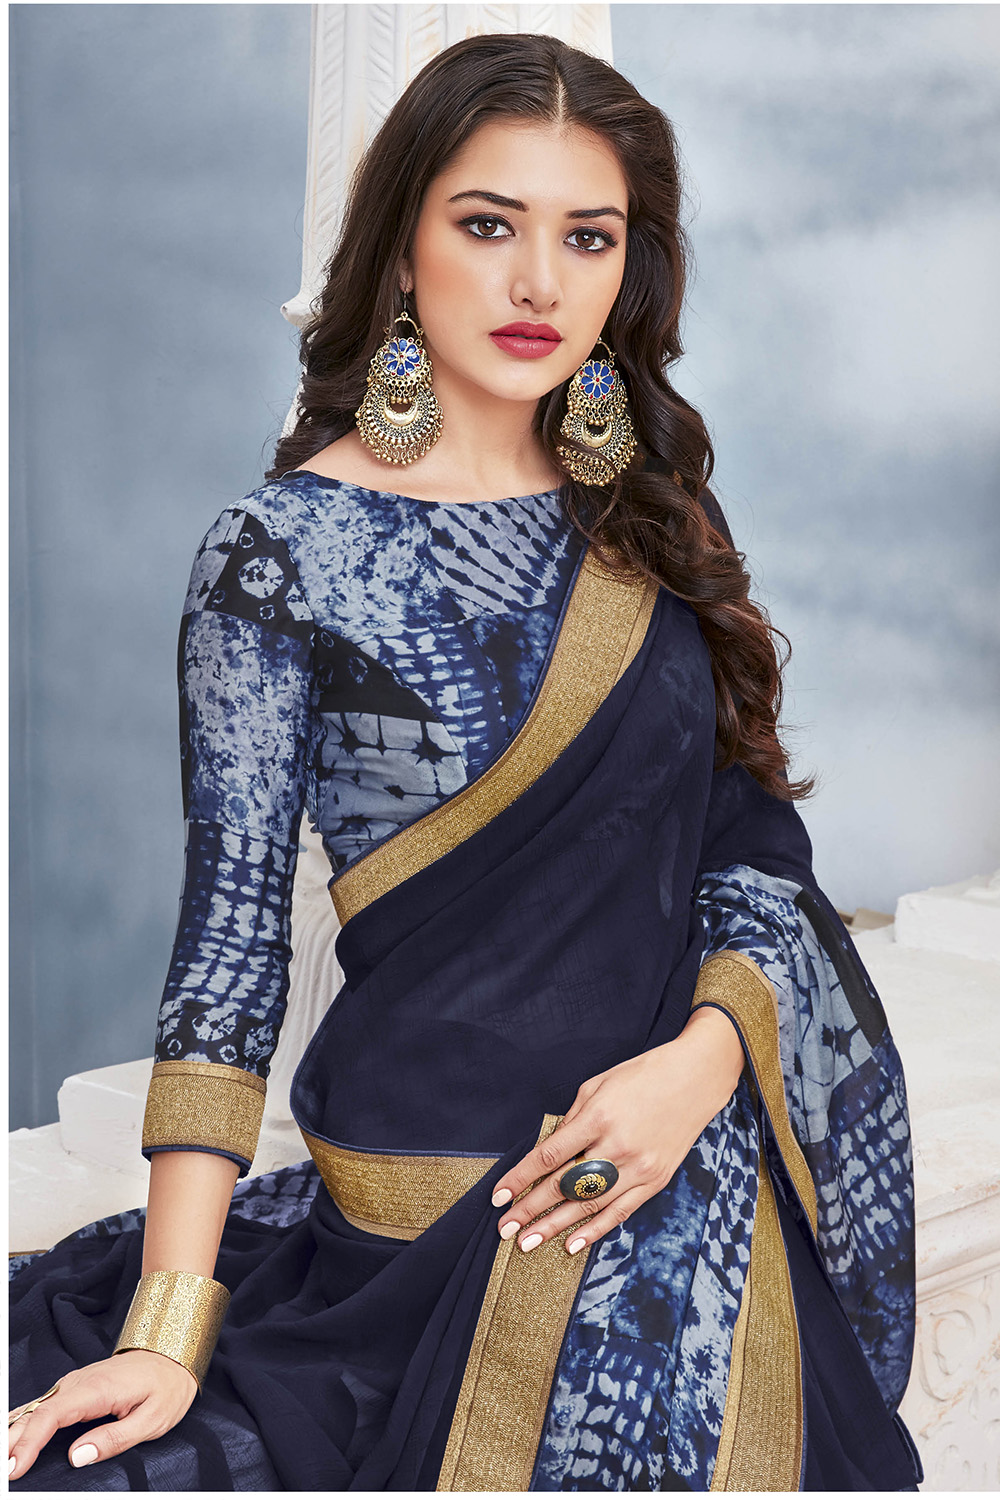 Doll Up Yourself in Saree Which is in Fashion